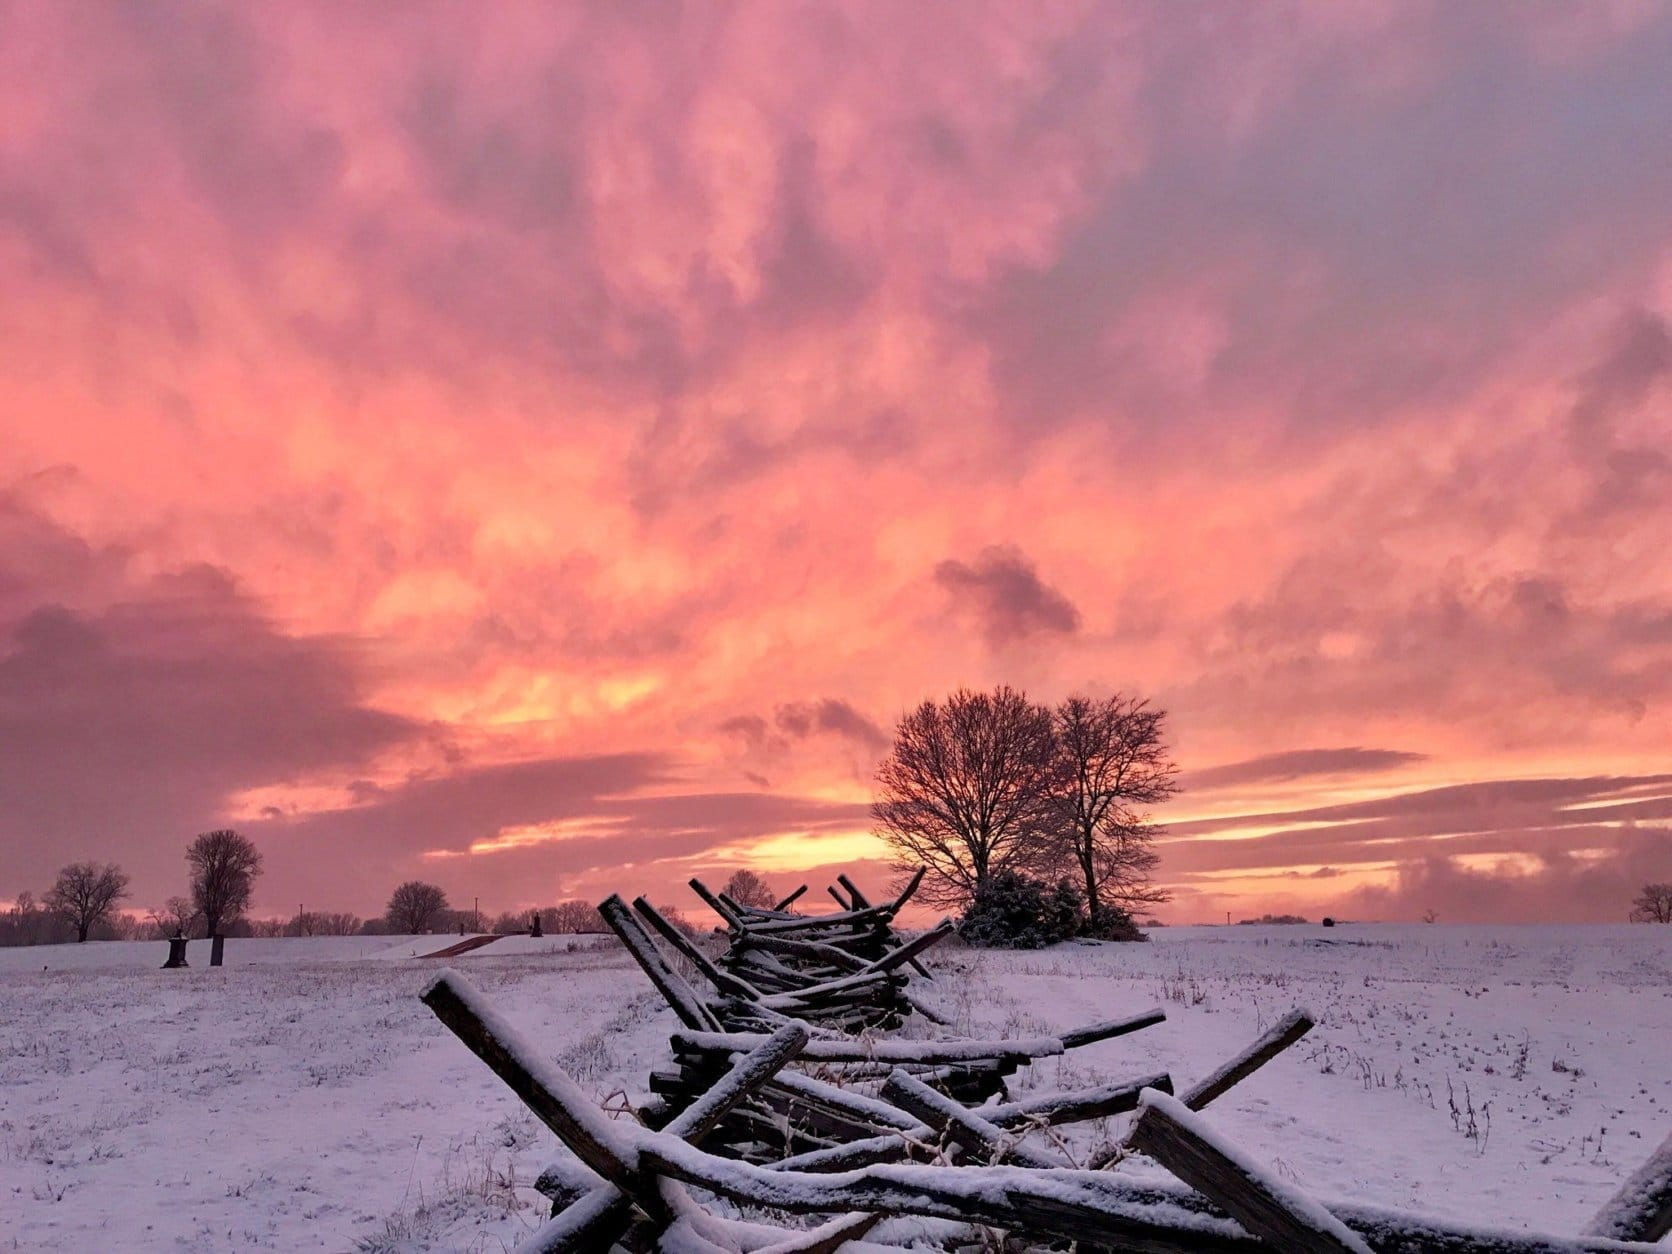 The sun sets over snowy Antietam National Battlefield in Maryland. (Courtesy @BackroadsRamblr via Twitter)